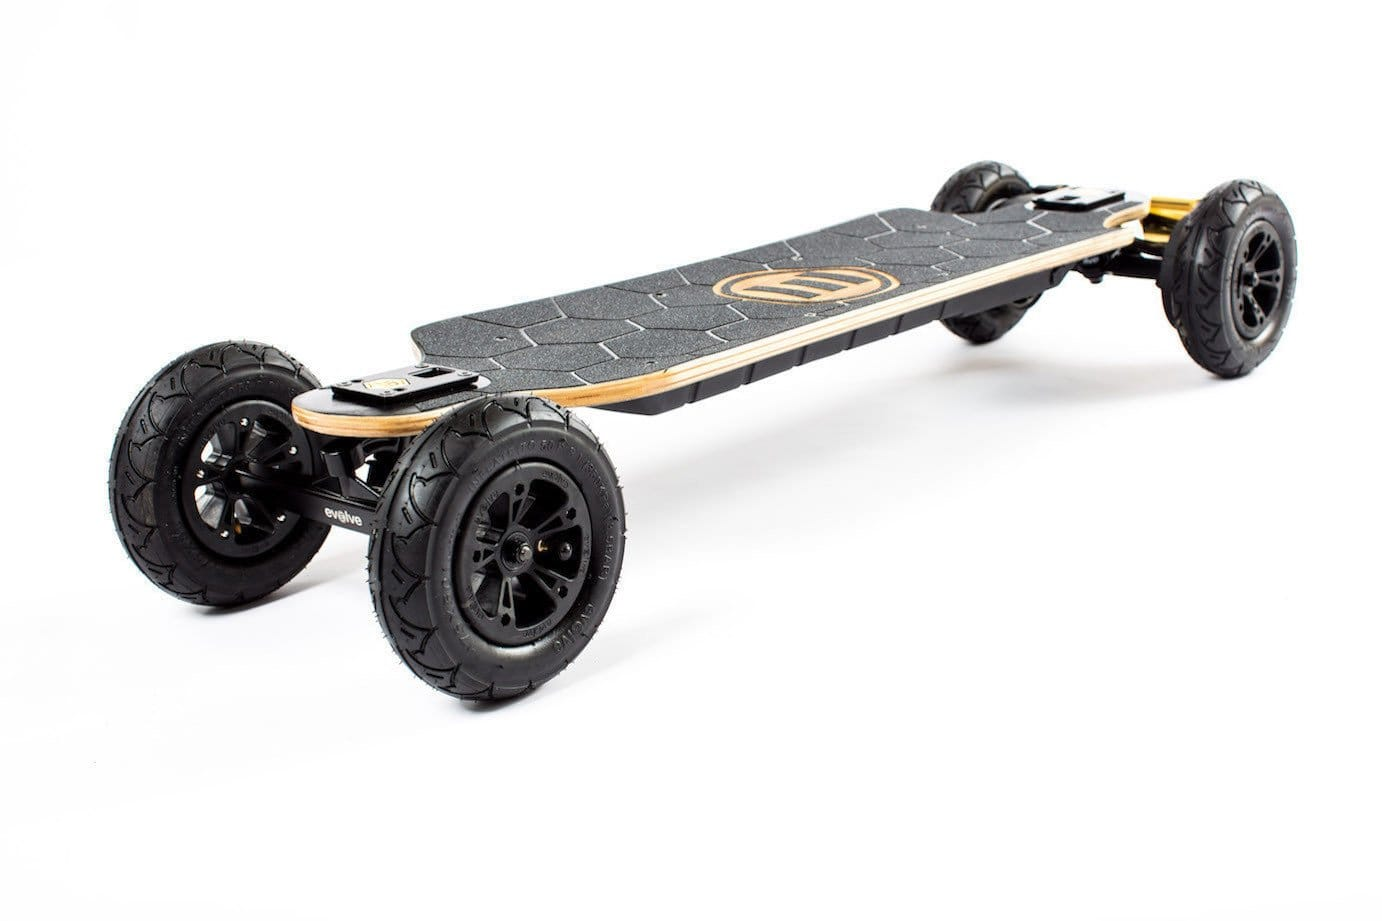 Evolve Bamboo Board GTX Black Friday Cyber Monday 2021